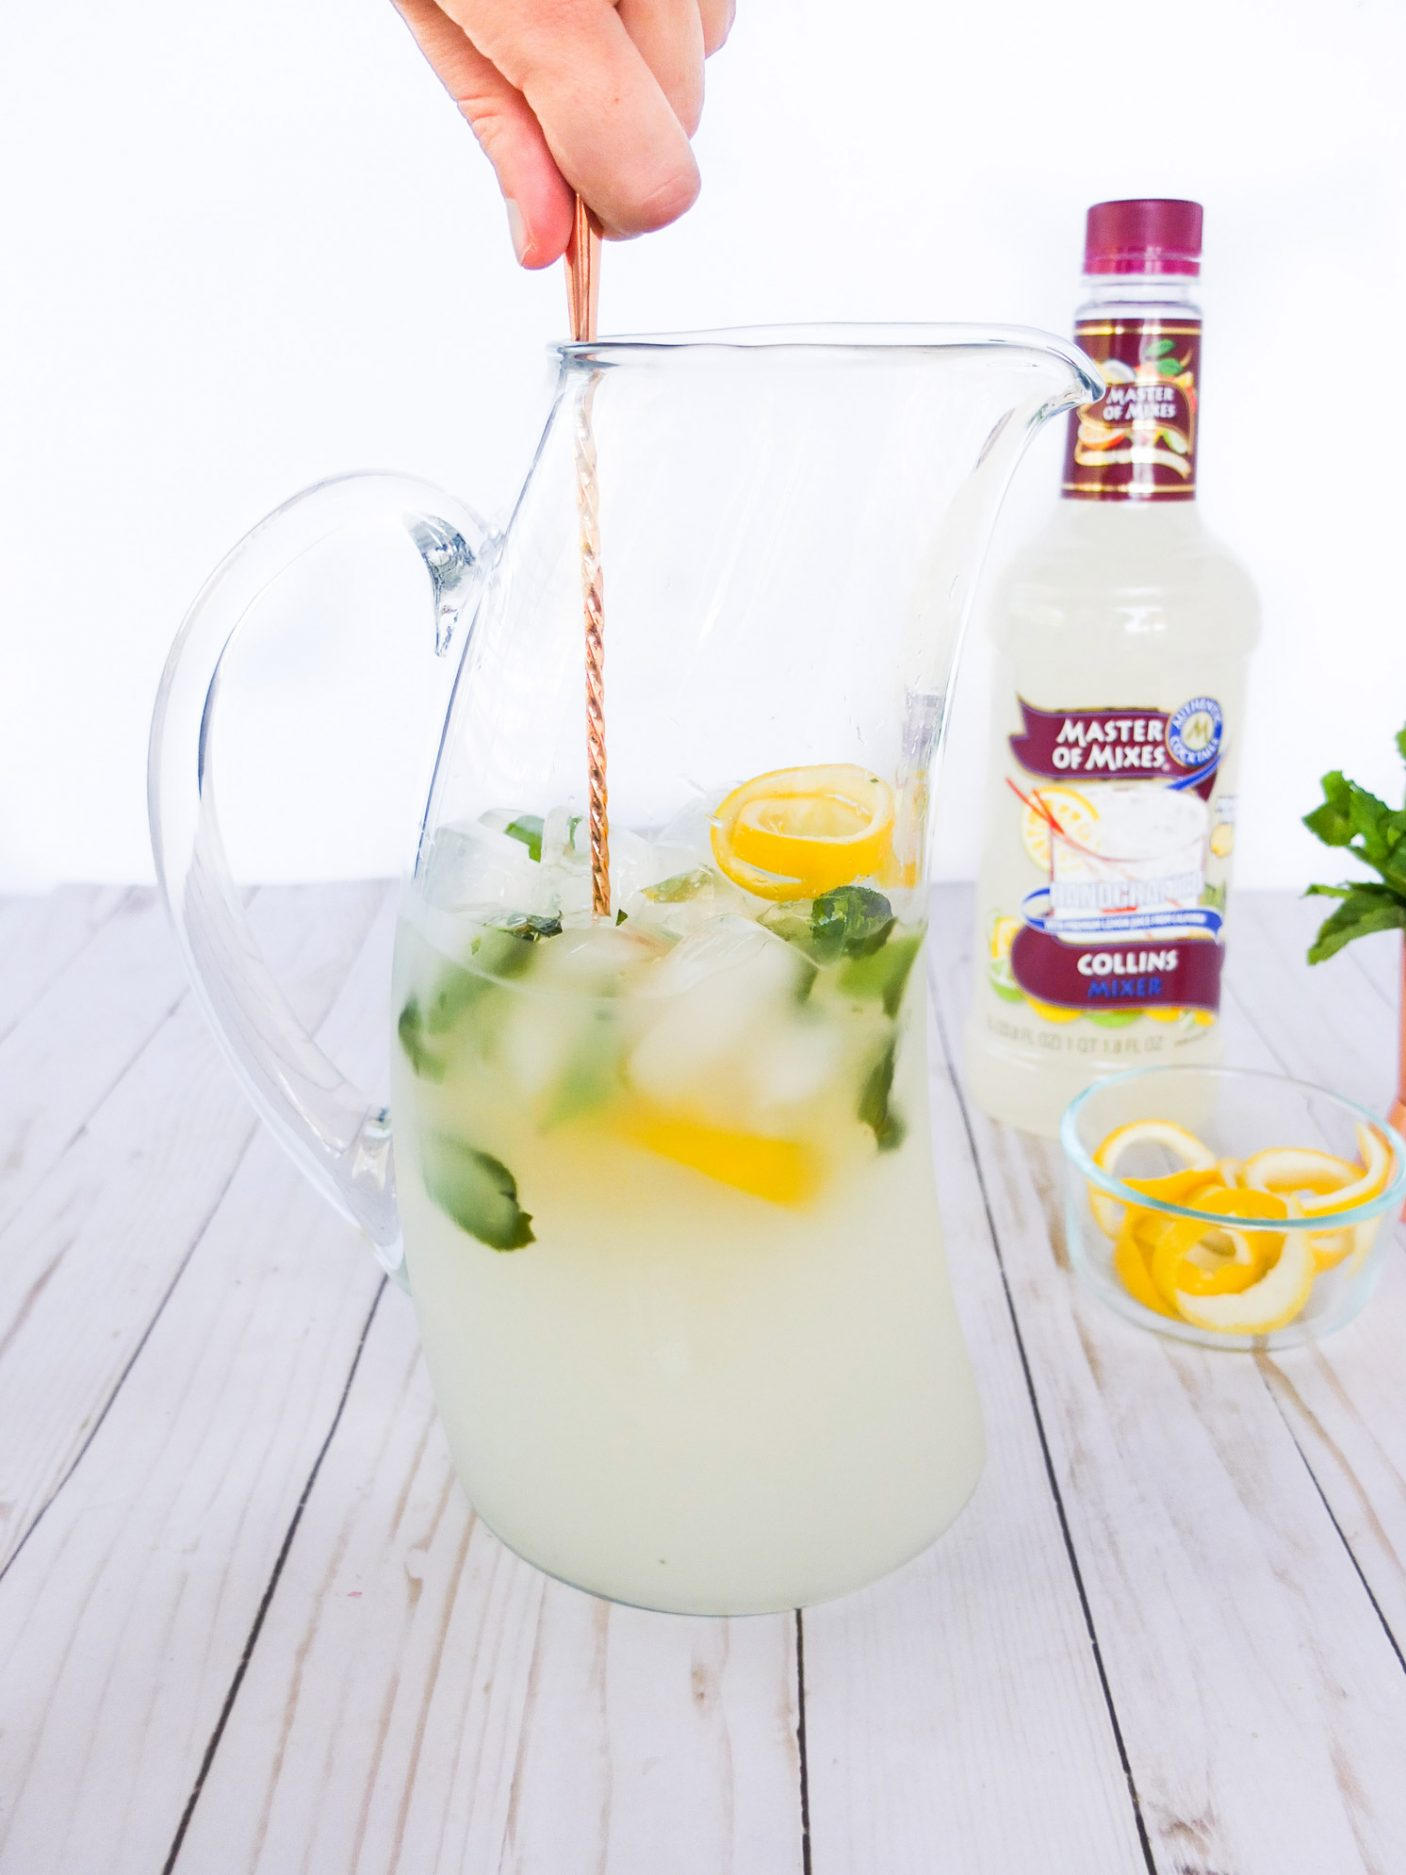 This big batch cocktail is a floral take on the classic Tom Collins drink. Made in a pitcher with Master of Mixes' Collins Mix it has notes of elderflower, mint, lemon and lime. Plus I share how to create big batch cocktails and my tips and tricks to making punch. Elle Talk